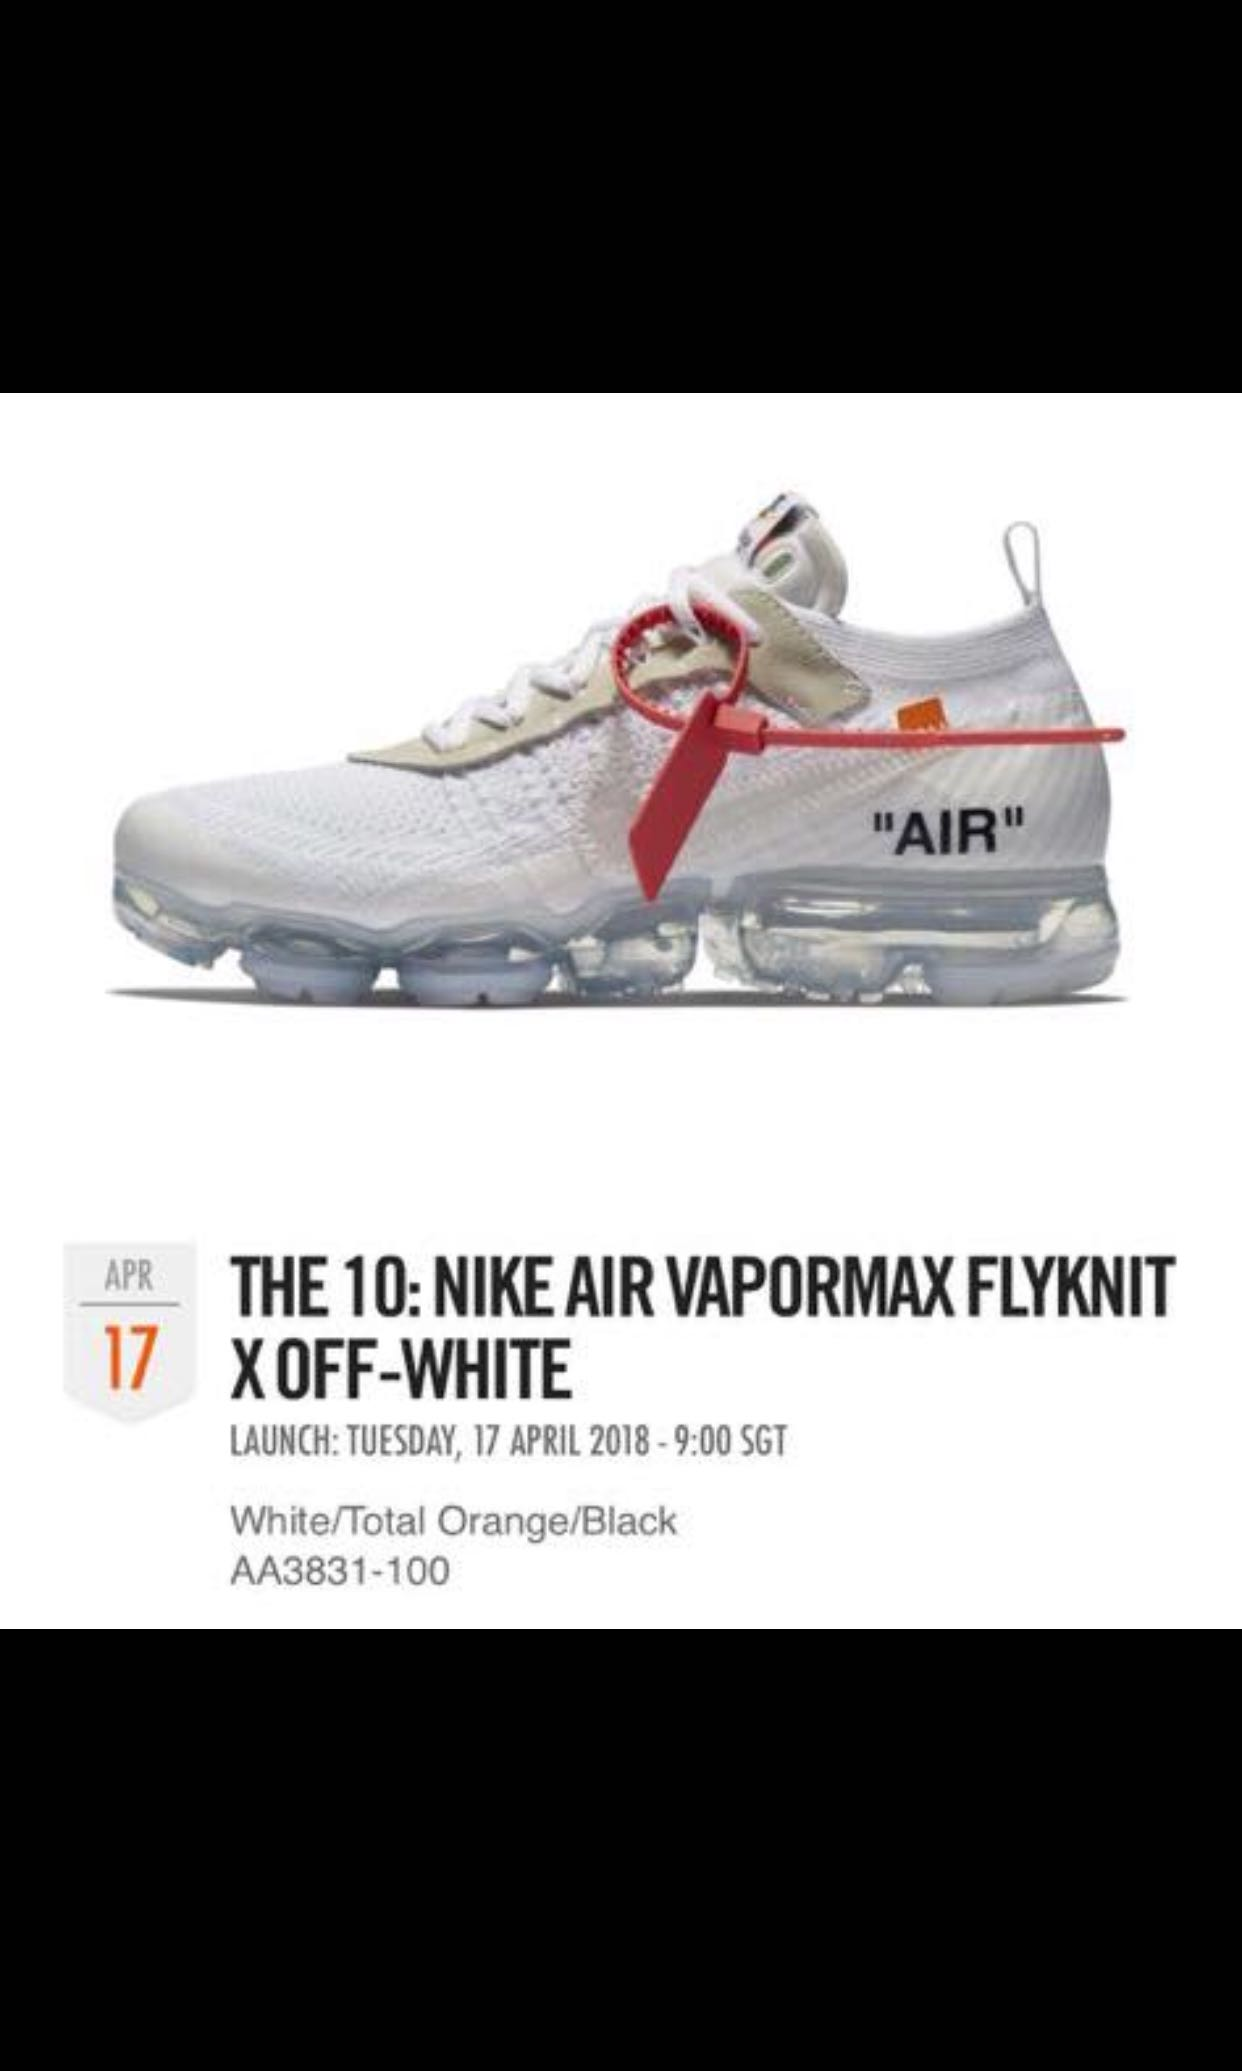 f5466cd812e THE 10  NIKE AIR VAPORMAX FLYKNIT X OFF-WHITE